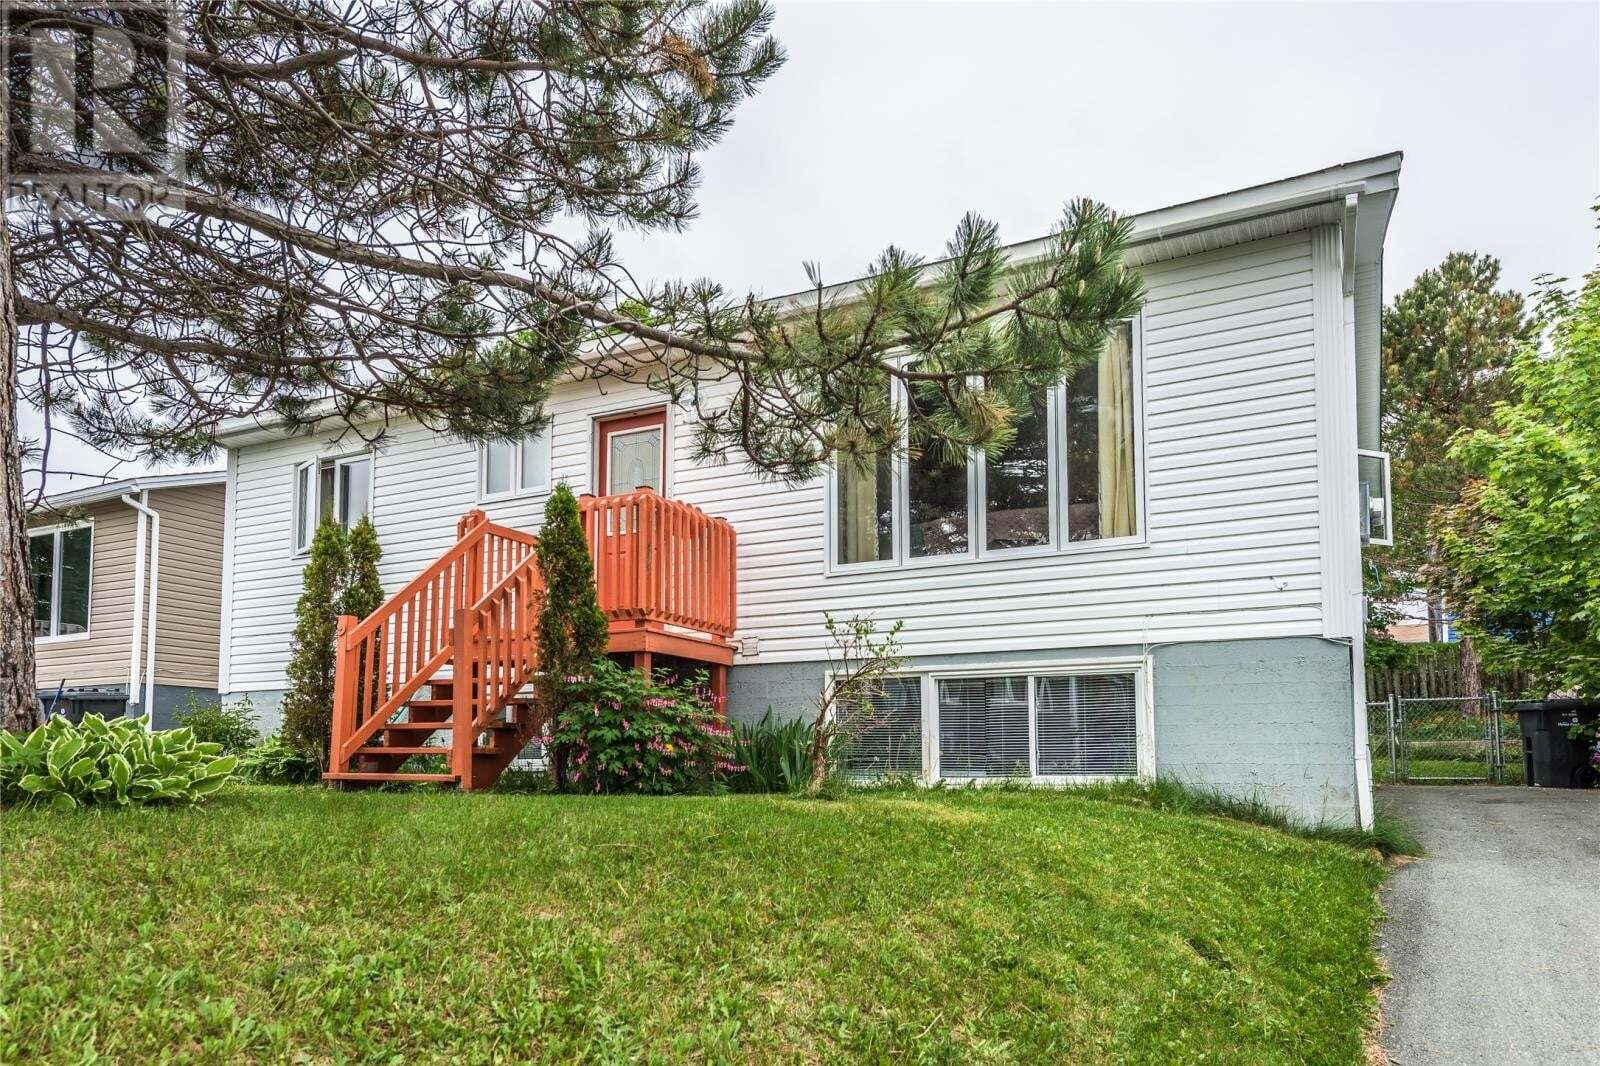 House for sale at 9 Harnum Cres Mount Pearl Newfoundland - MLS: 1218020